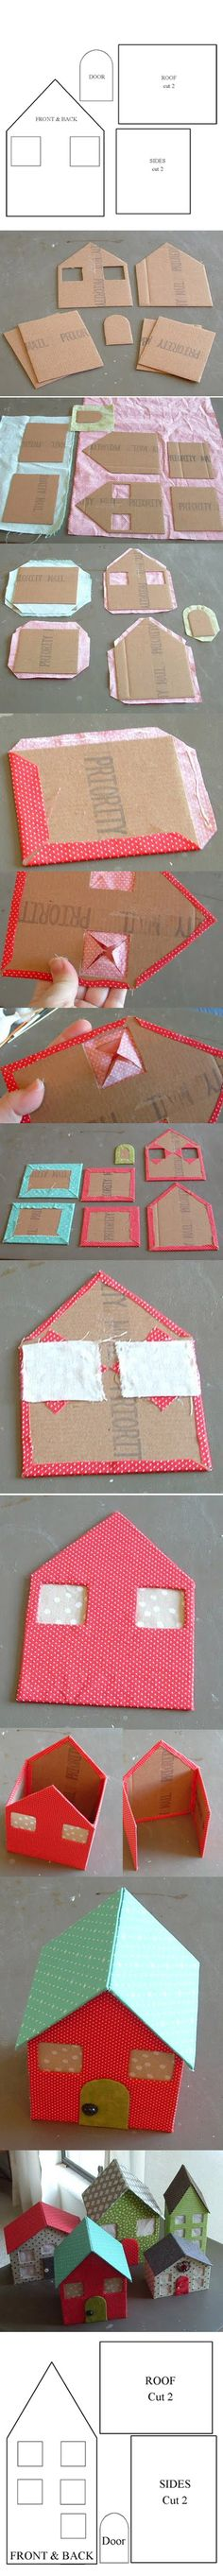 i'm thinking use different fabric and battery tea lights to make a christmas village. to make a How To: Make Your Own Doll House From Cardboard & Fabric Kids Crafts, Diy And Crafts, Arts And Crafts, Diy Projects To Try, Sewing Projects, Craft Projects, Cardboard Crafts, Paper Crafts, Cardboard Houses